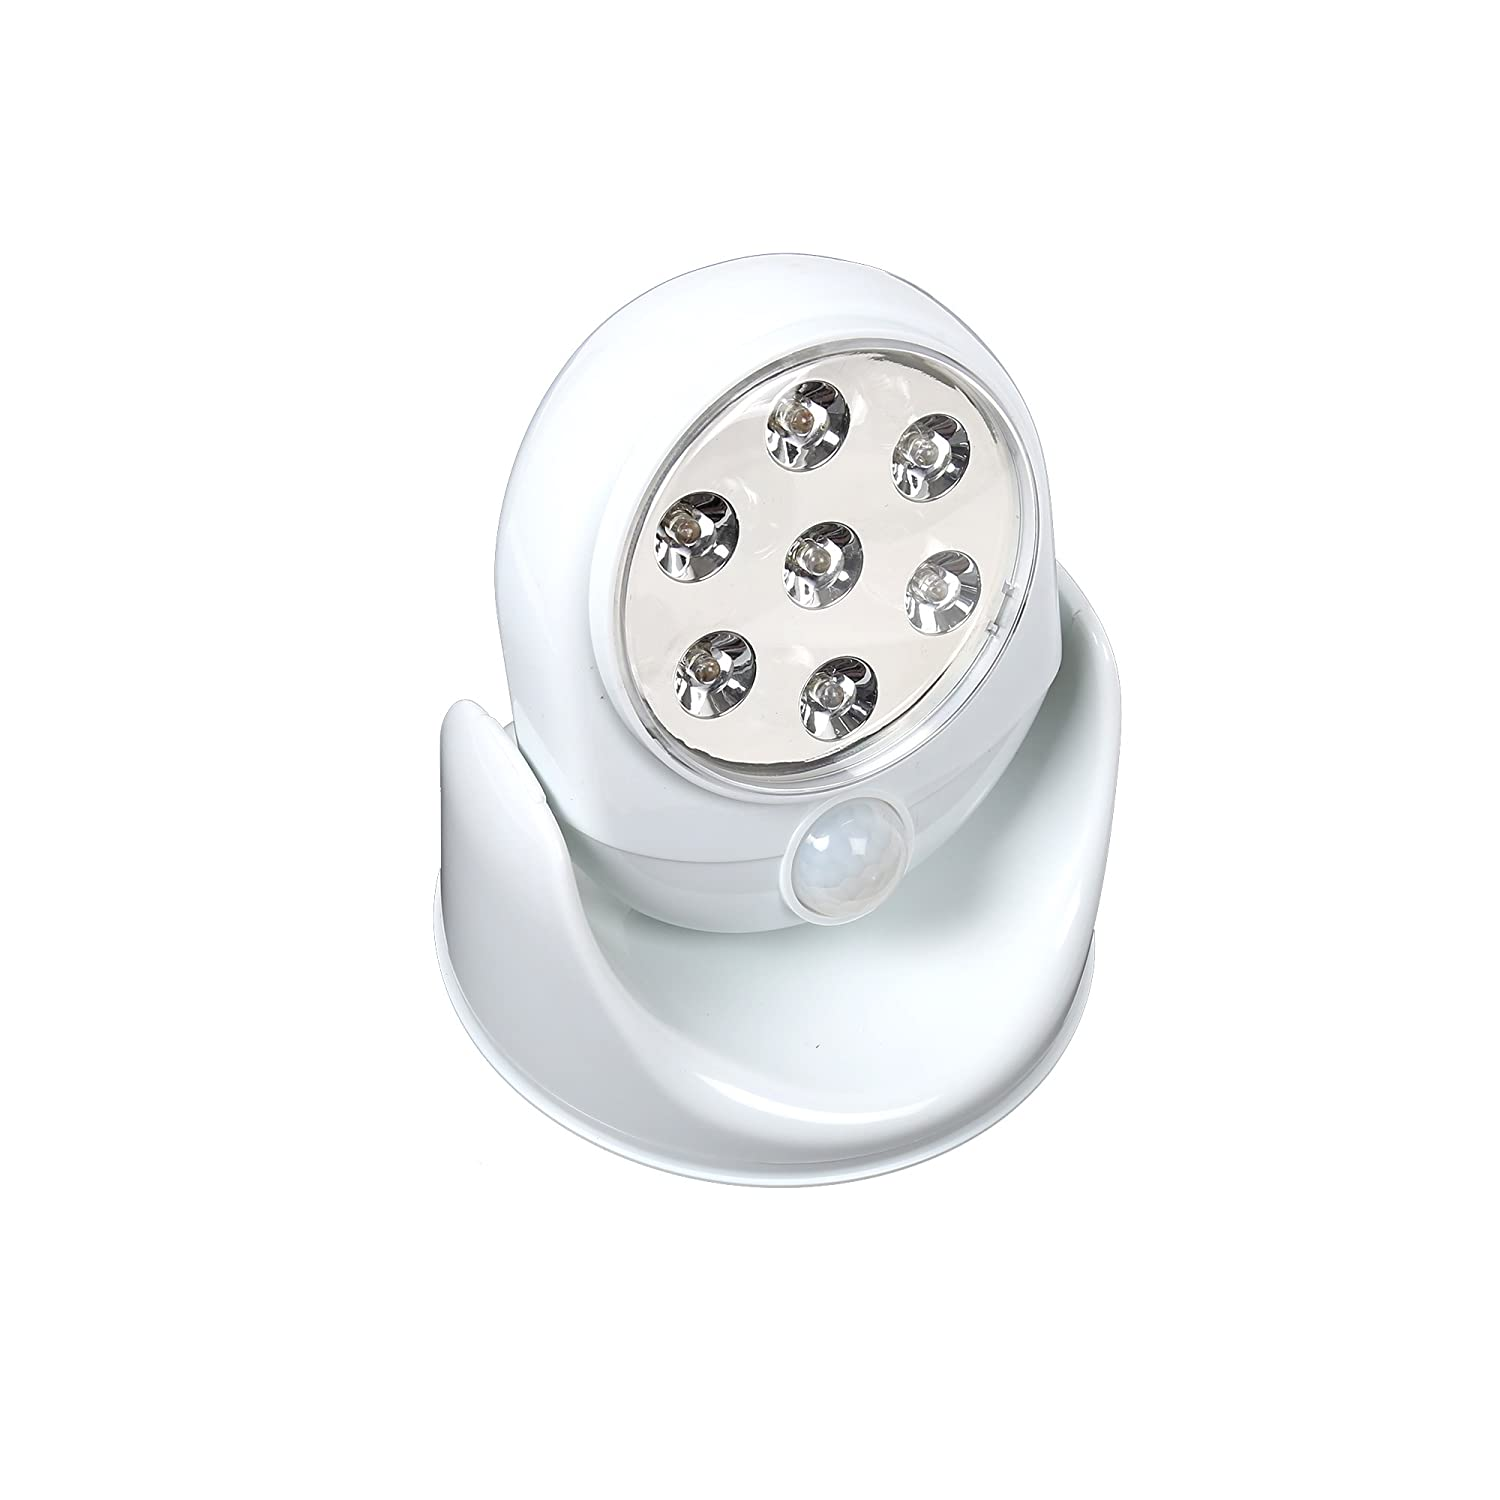 White 5 x 5.5 inches iFocus Electronics Motion Activated LED Light